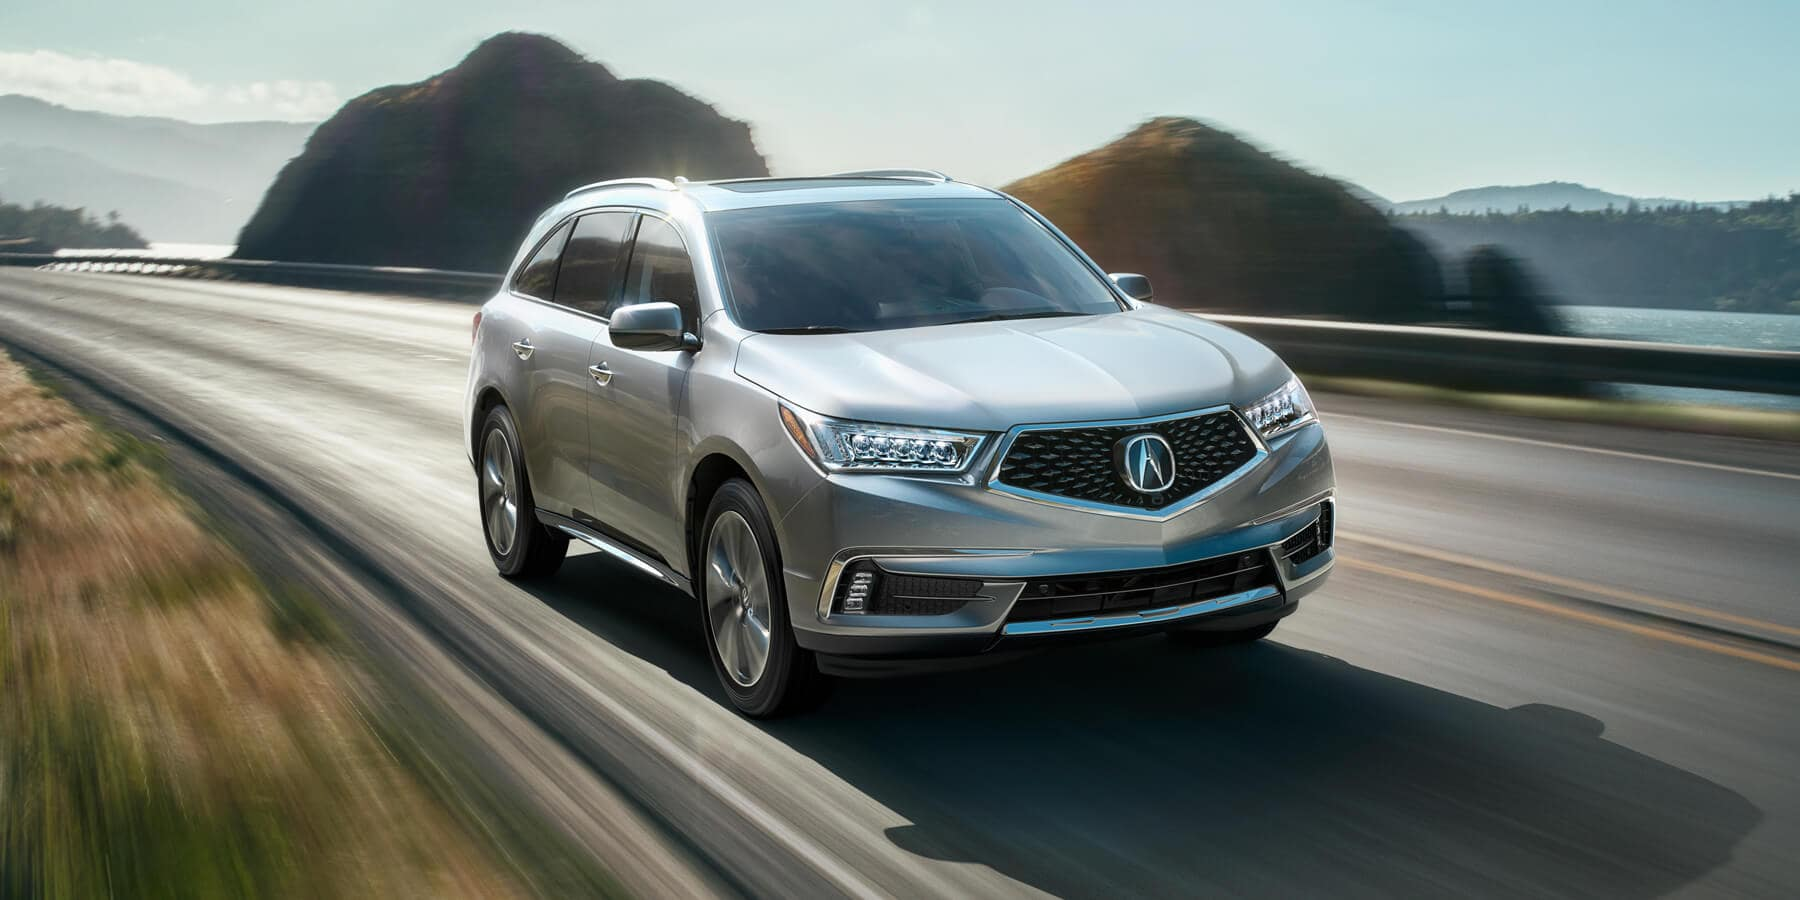 2019 MDX Central Texas Acura Dealers Homepage Background